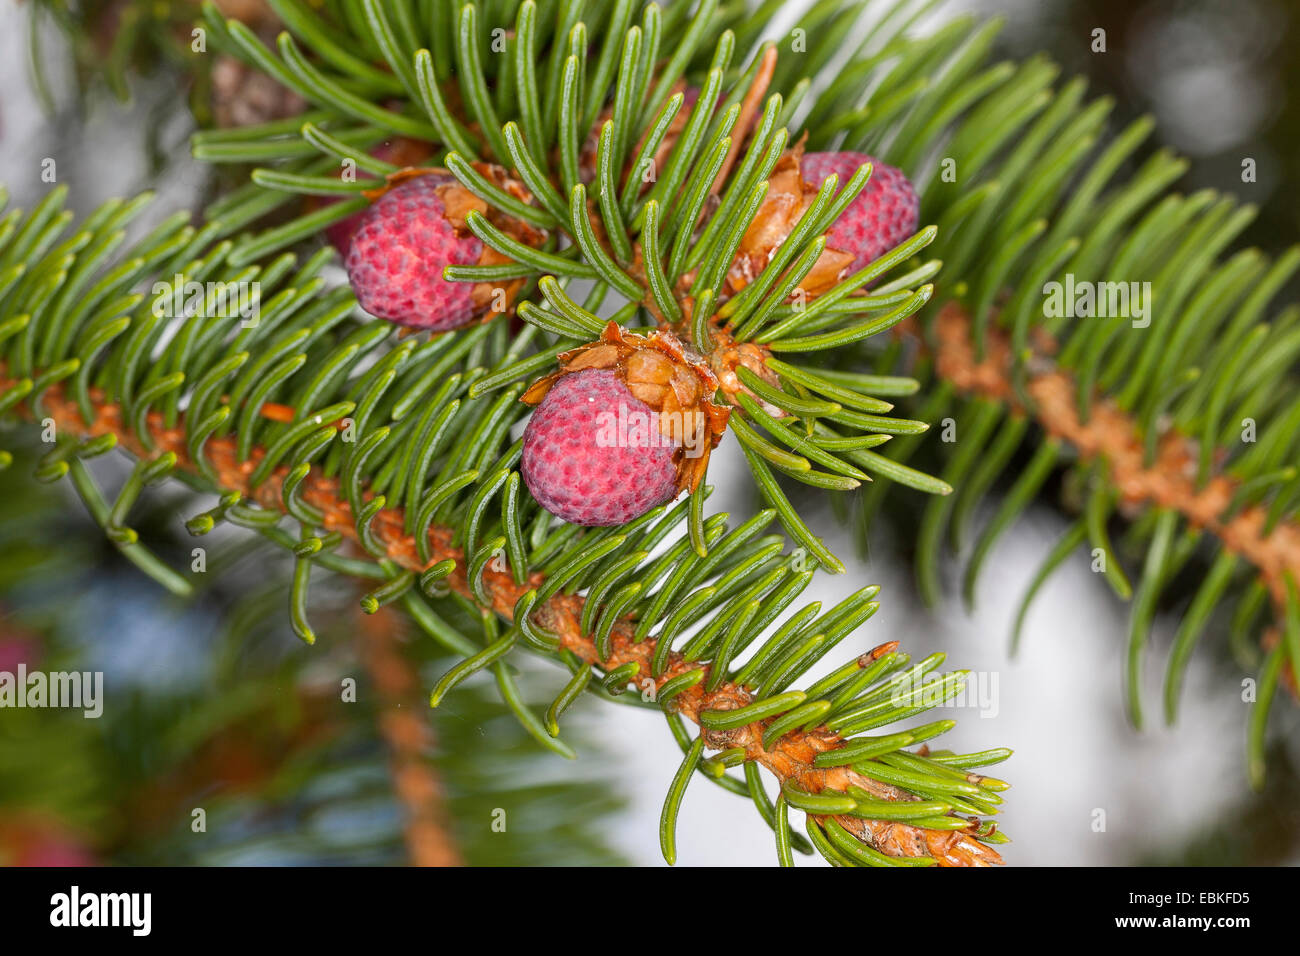 Norway spruce (Picea abies), branch with young cones, Germany - Stock Image